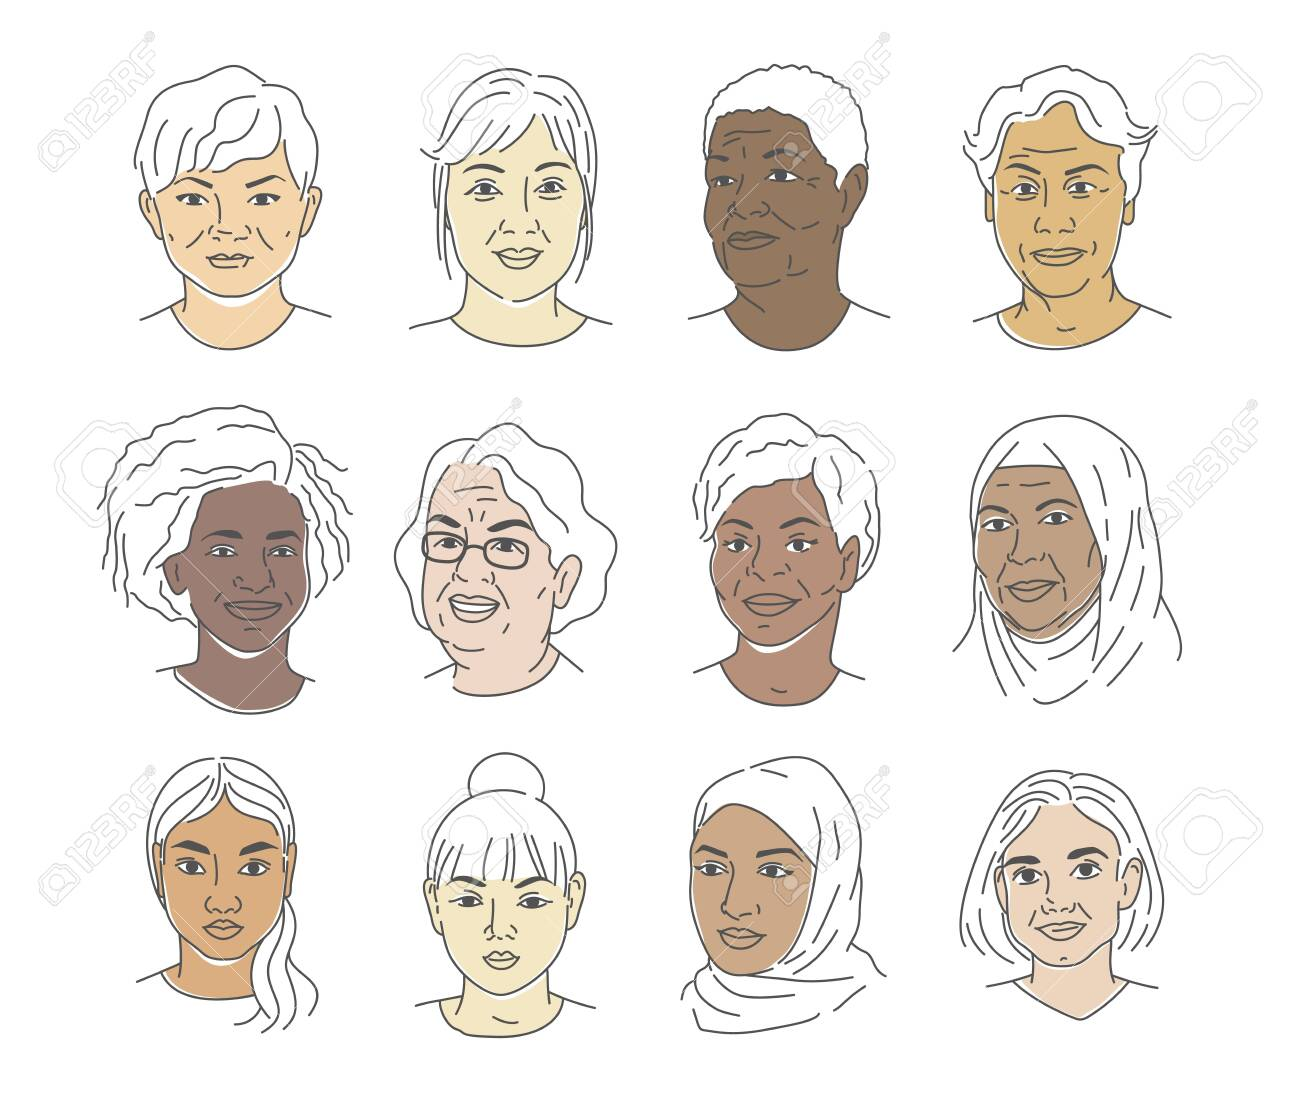 A collection of portraits of people of different nationalities and ages. Women of all races. Icons for user research experience, customer profile. - 150719700